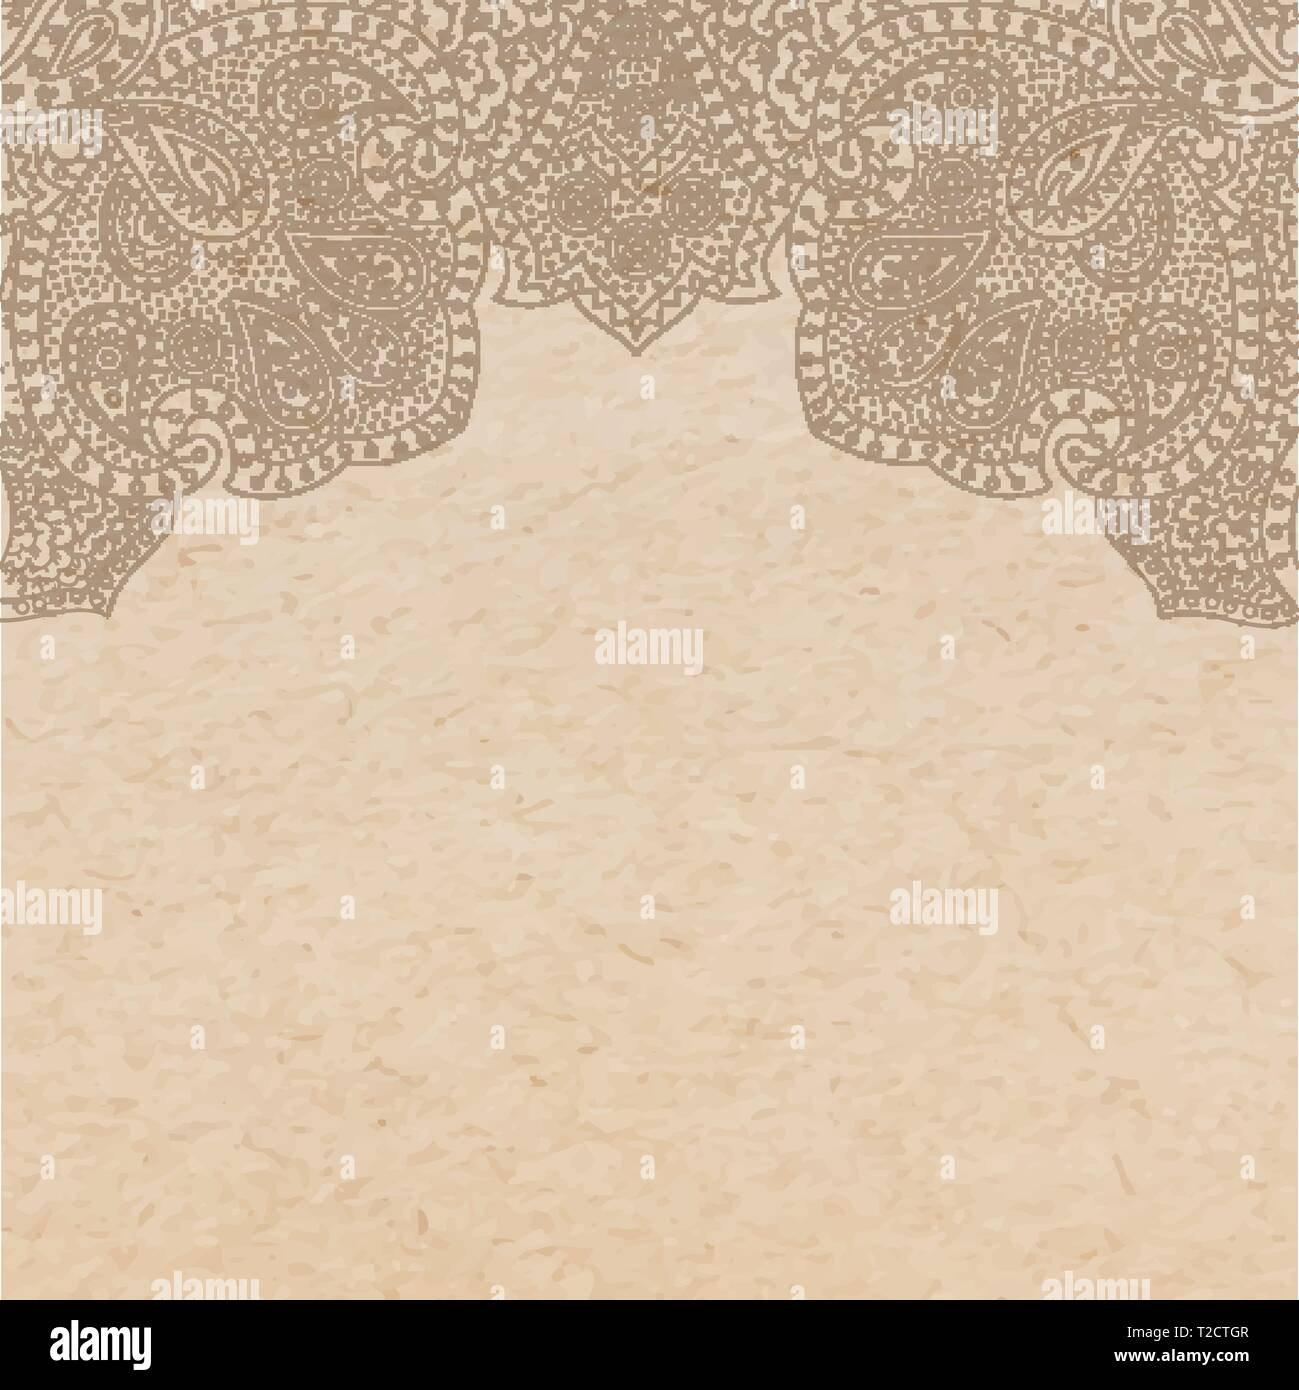 bac582b054249 Vintage old paper texture with vector traditional oriental paisley  ornament, indian style decorative background,